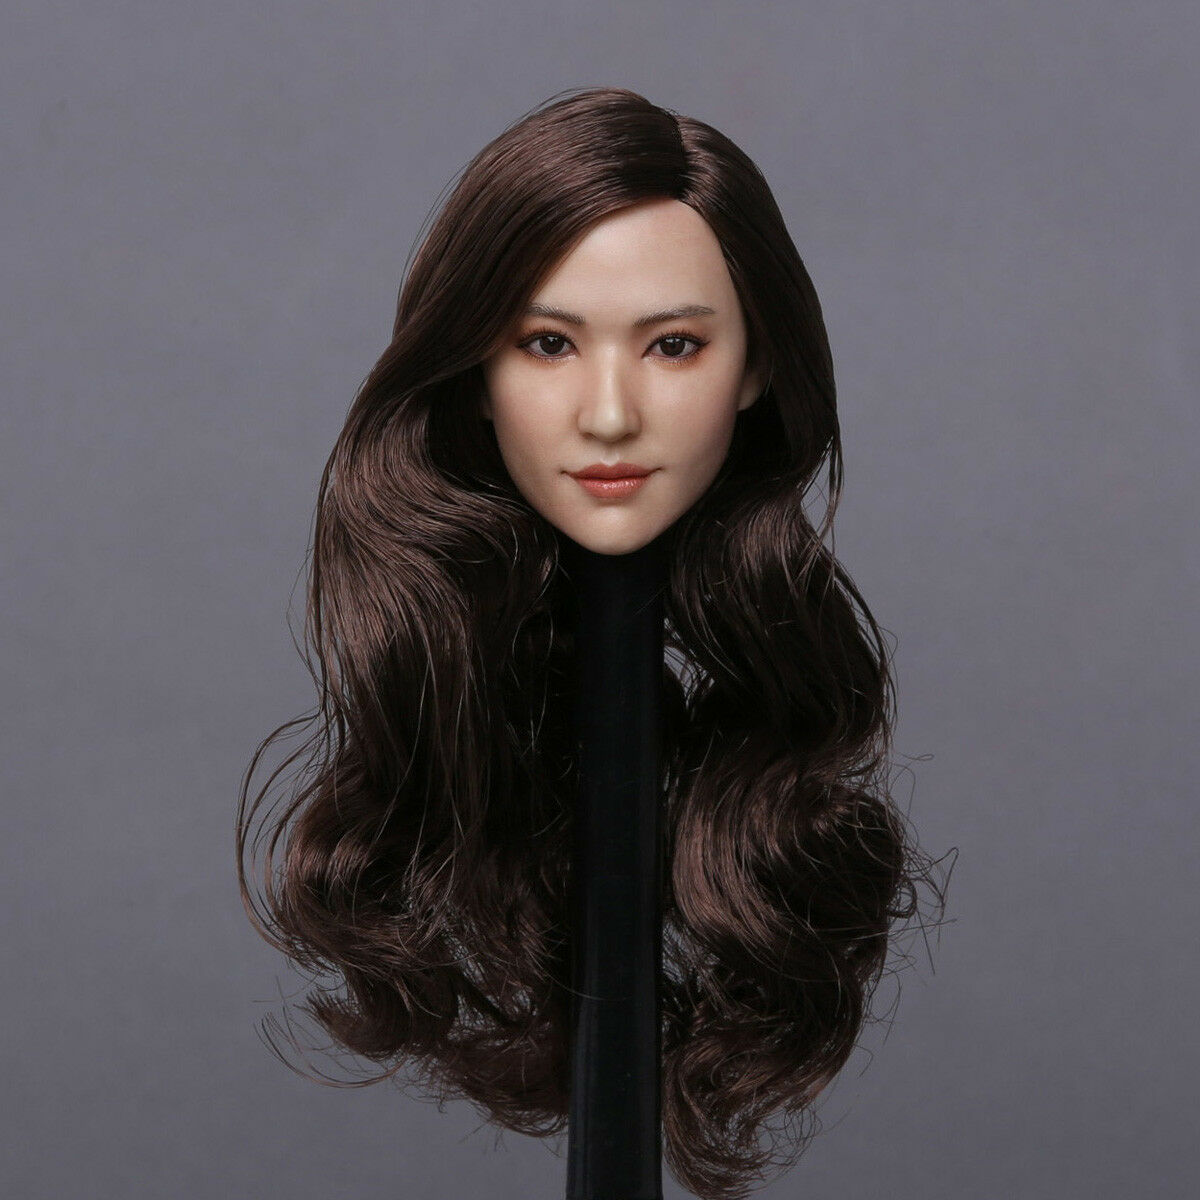 1 6 GACTOYS GC015 Female Head Sculpt Carved Long Curly Curly Curly Hair For 12  Figure Doll 58ae2e